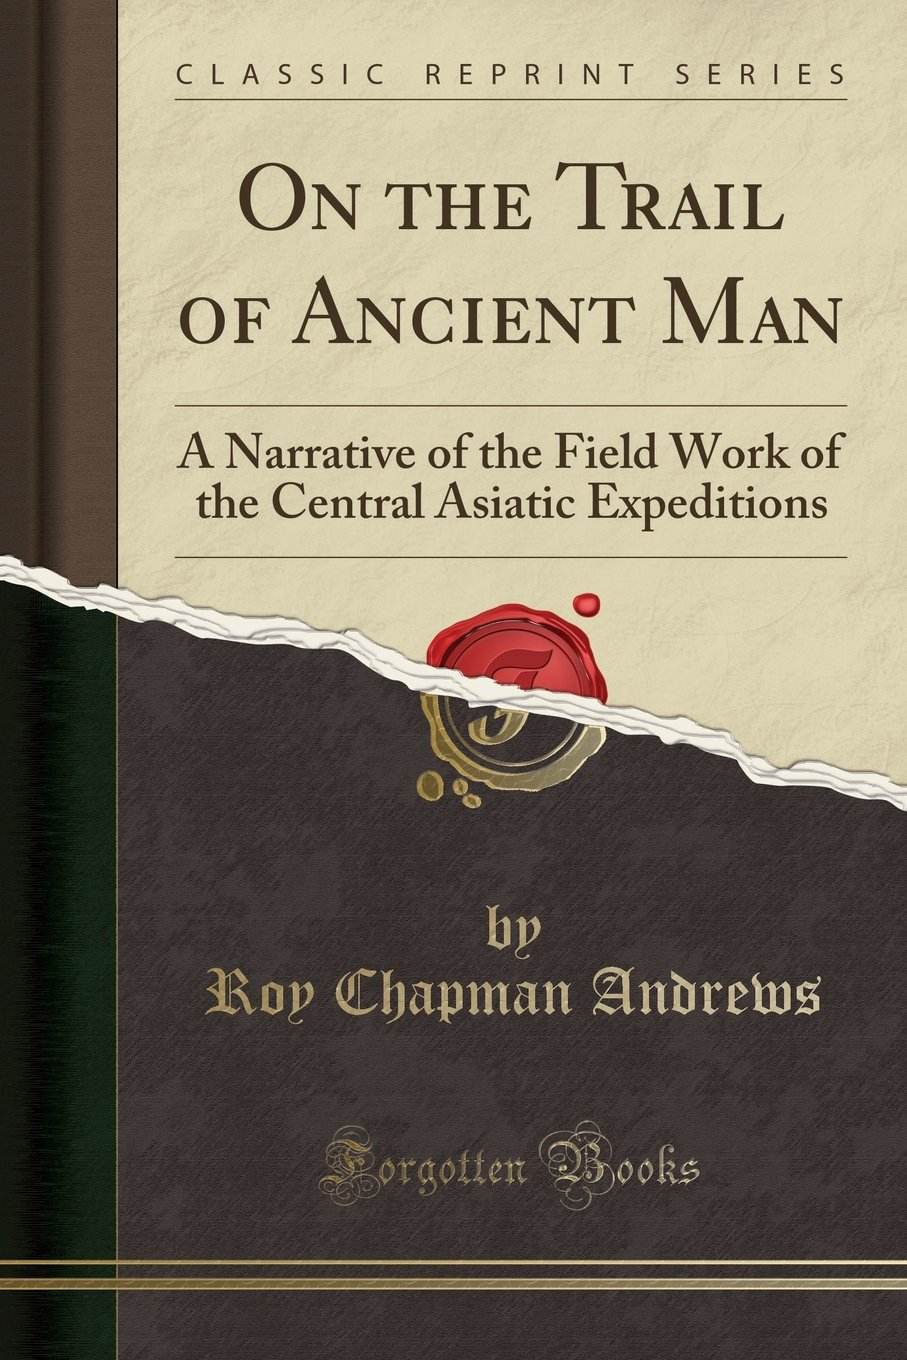 On the Trail of Ancient Man: A Narrative of the Field Work of the Central Asiatic Expeditions (Classic Reprint) pdf